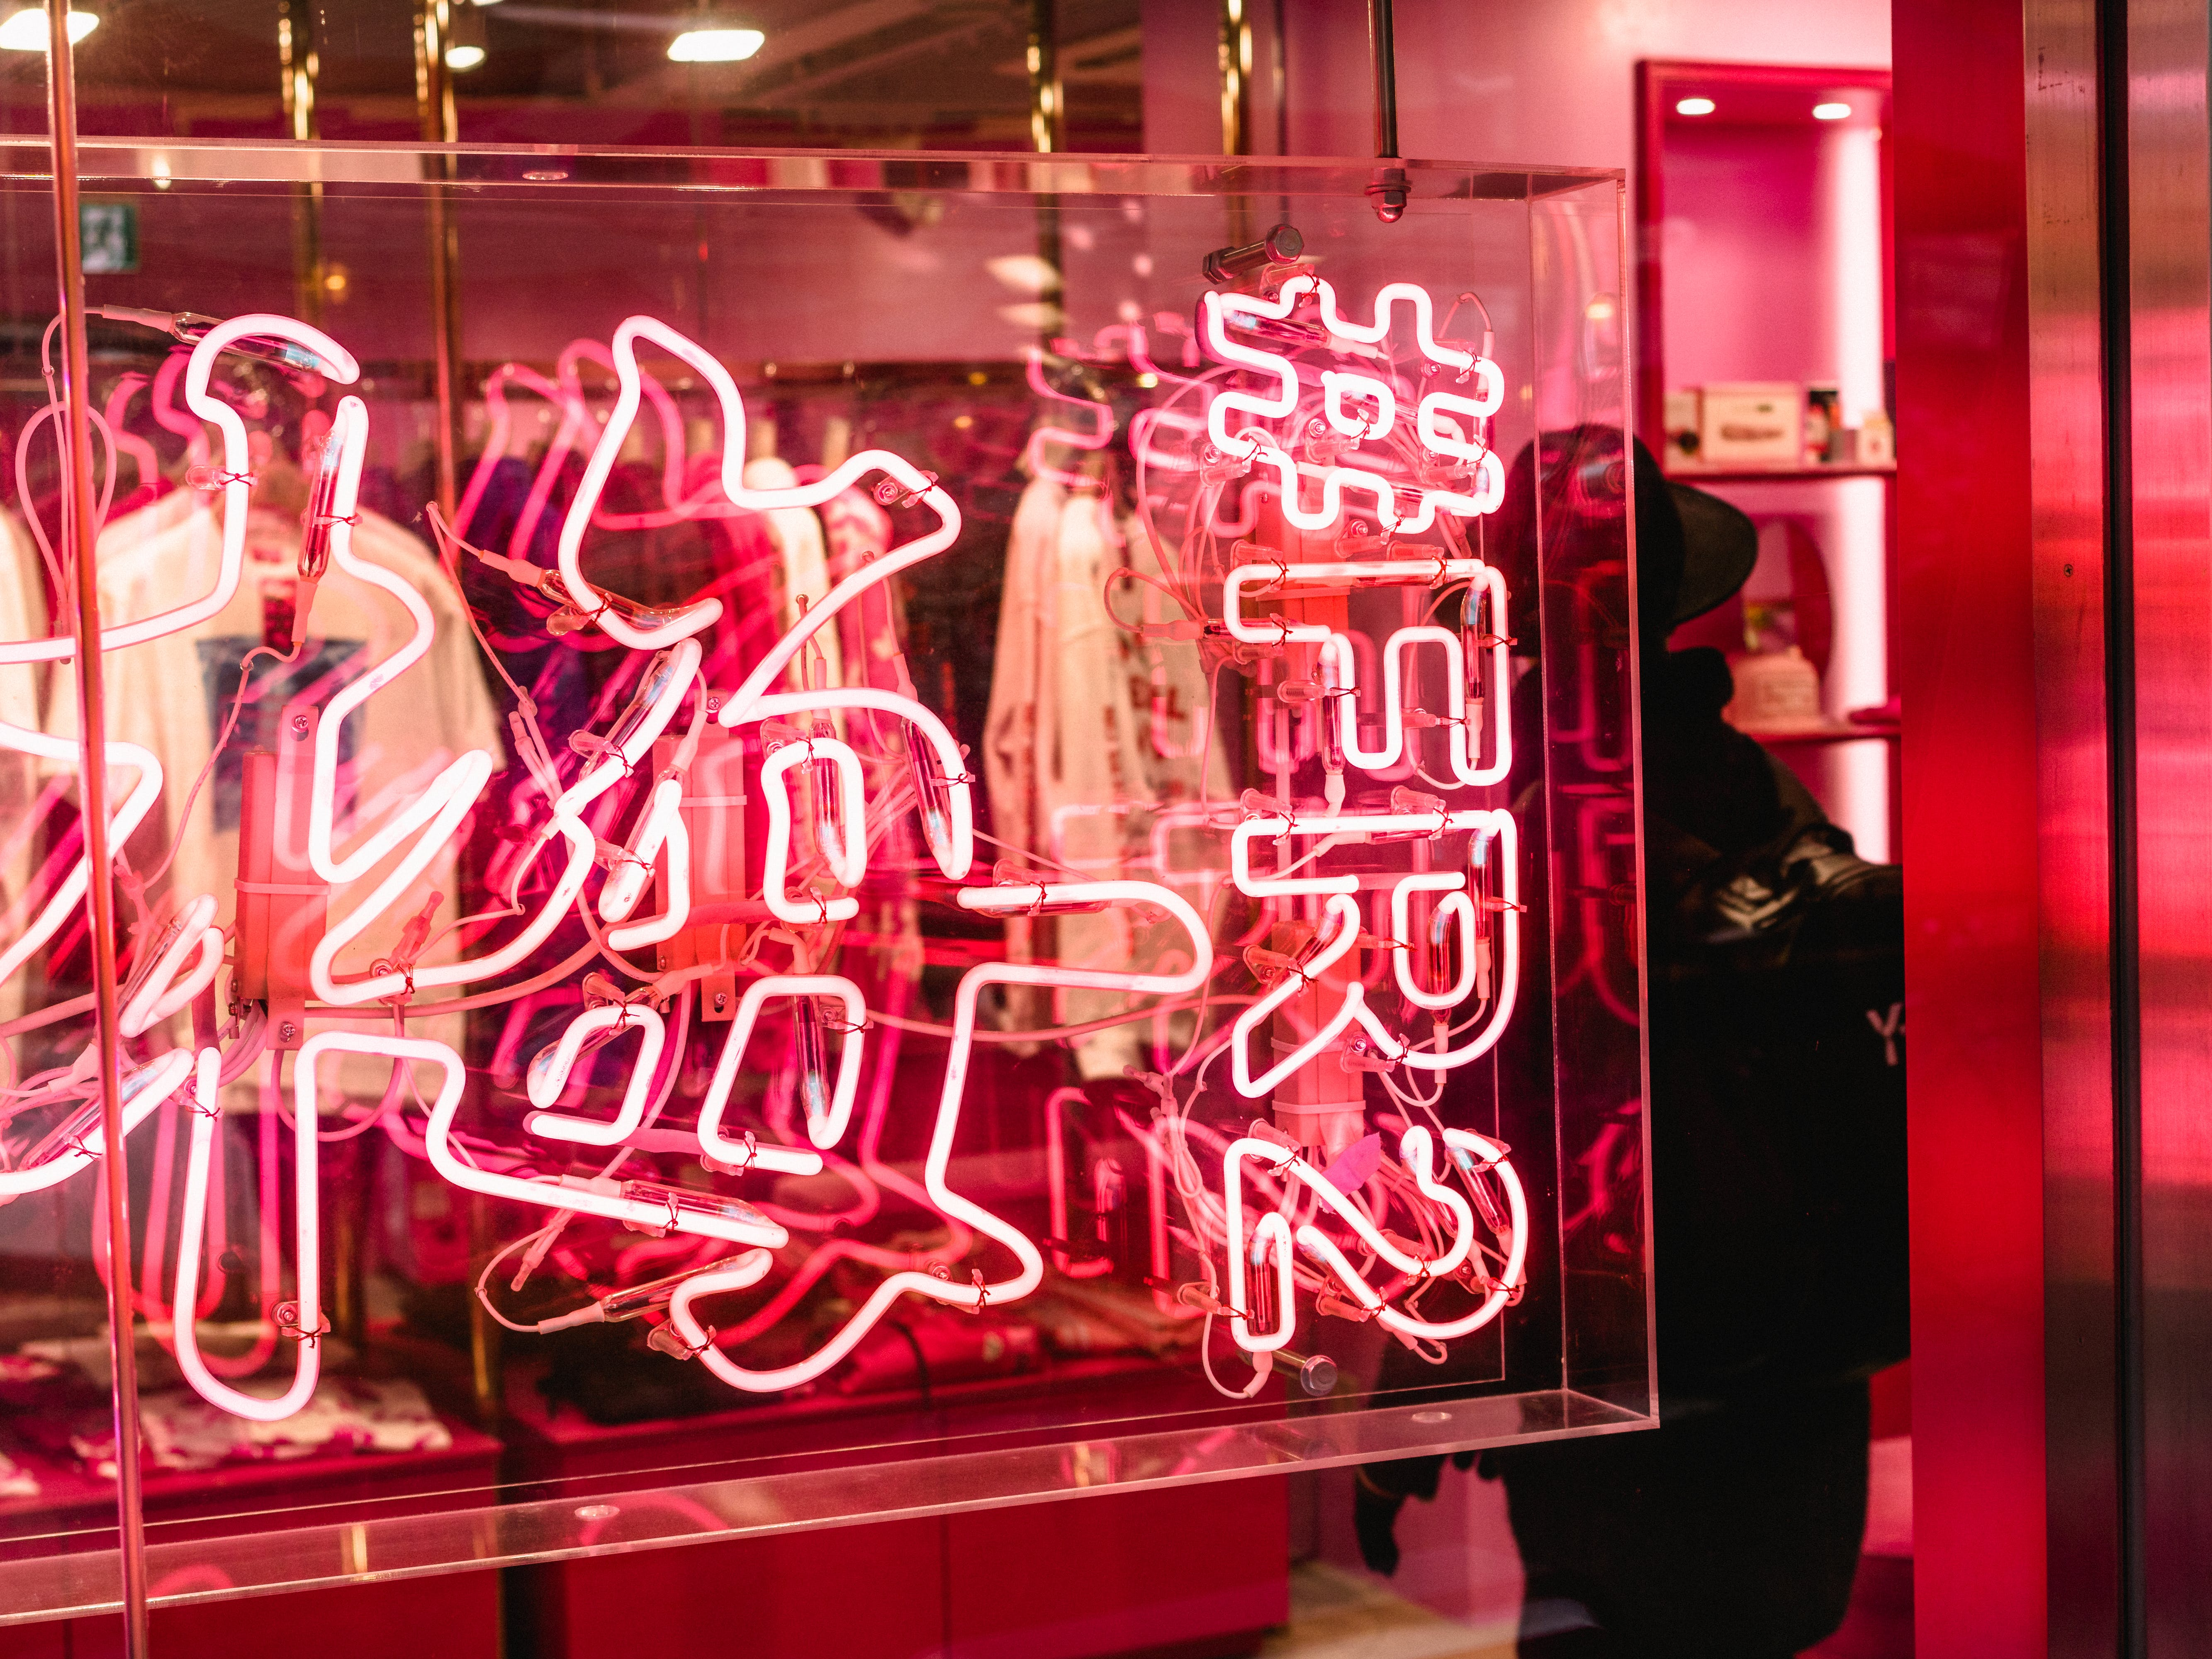 Pink Neon Signage